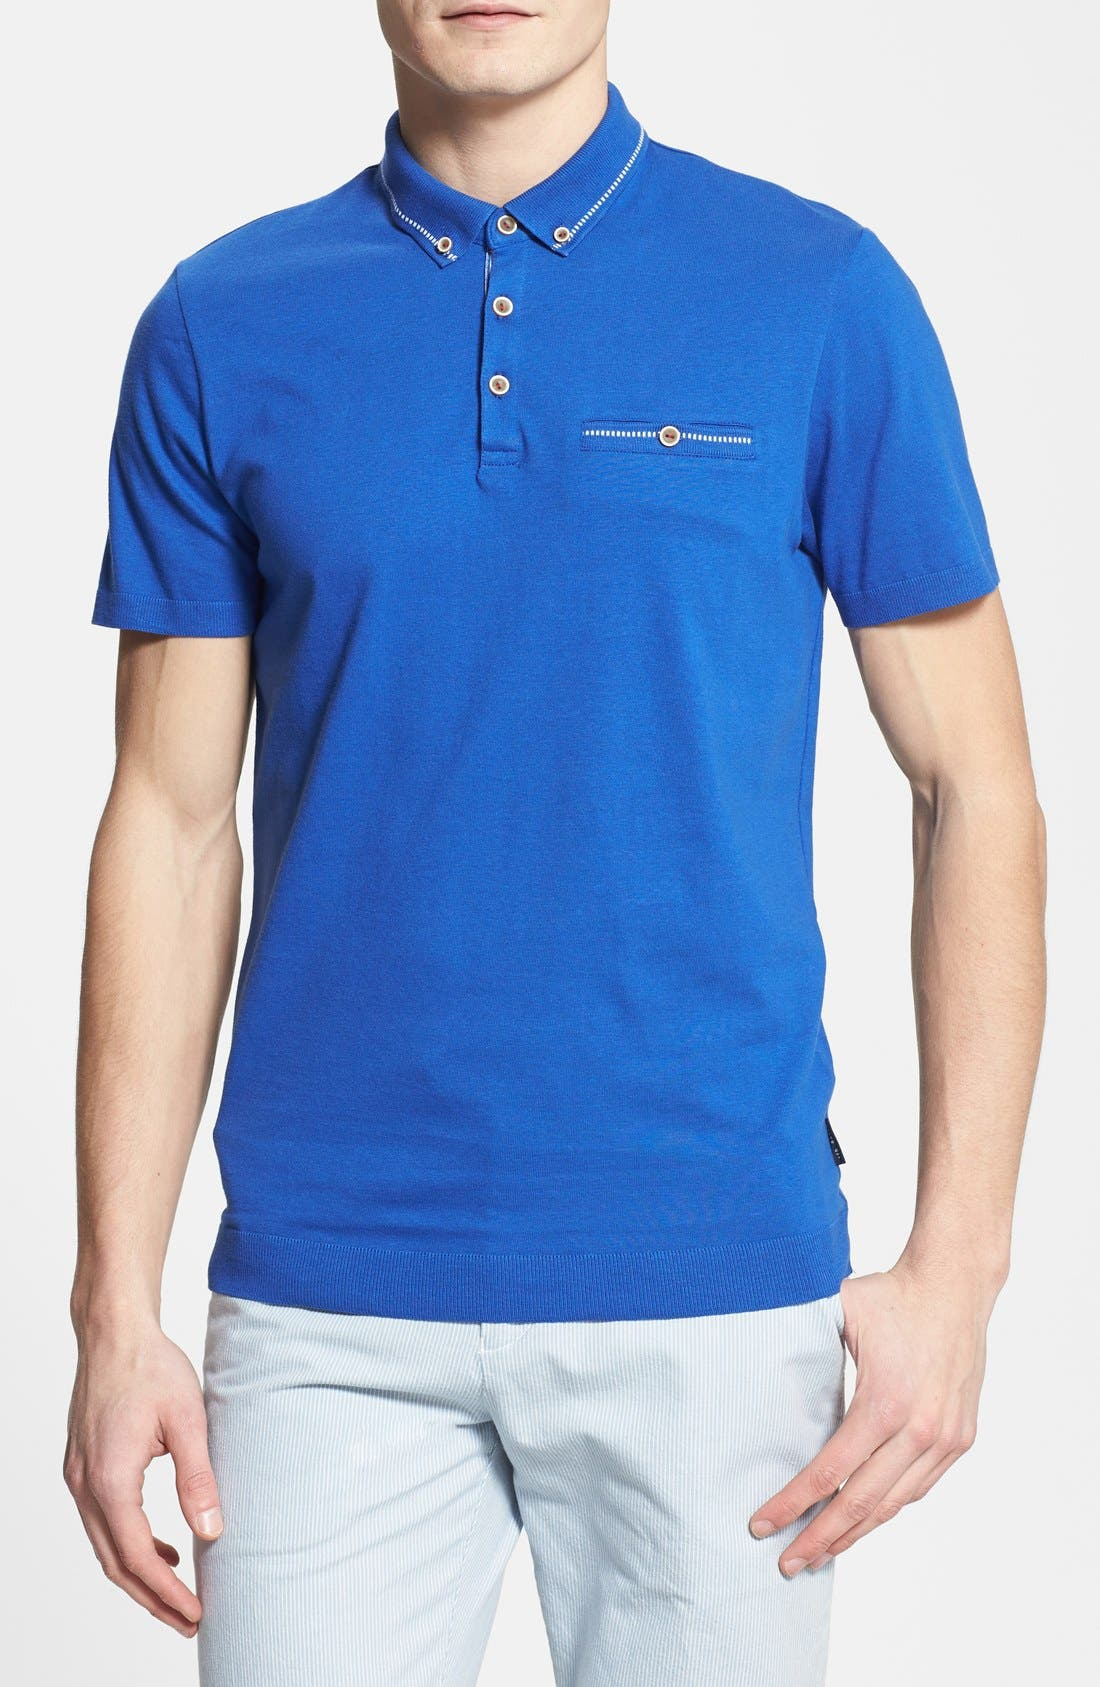 Main Image - Ted Baker London 'Rosbowl' Solid Knit Polo